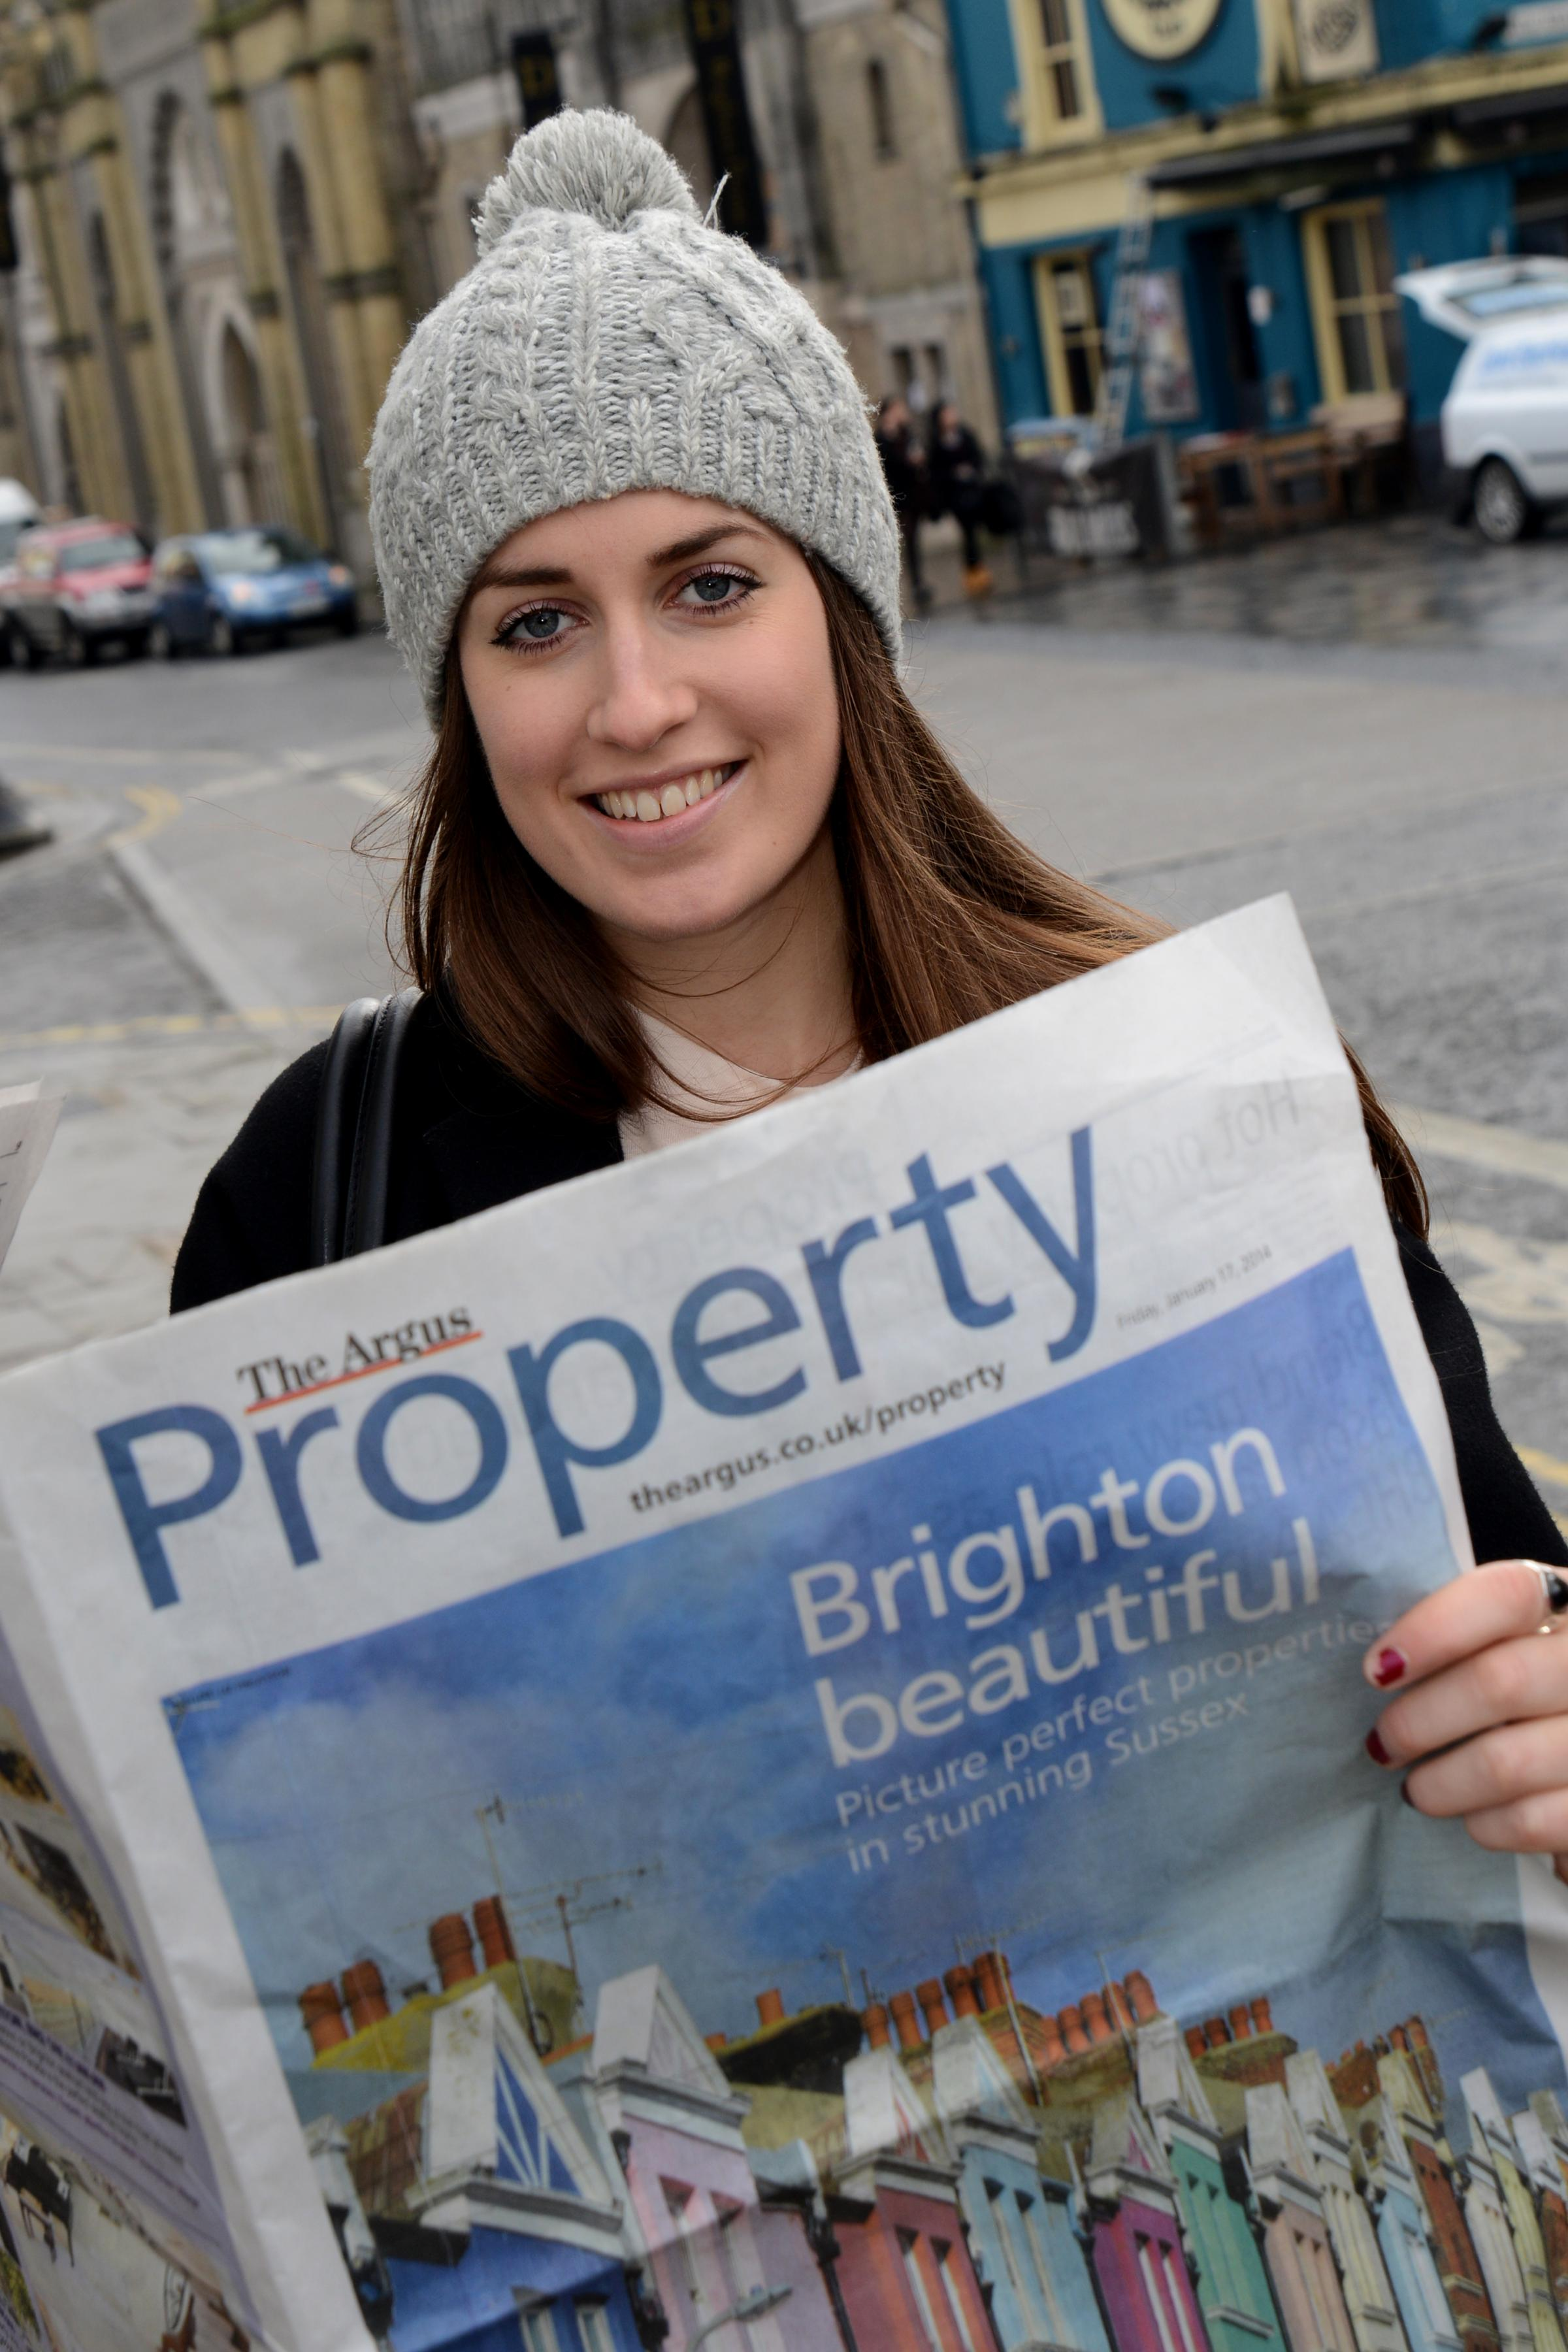 Advertisers and readers hail new Argus property supplement